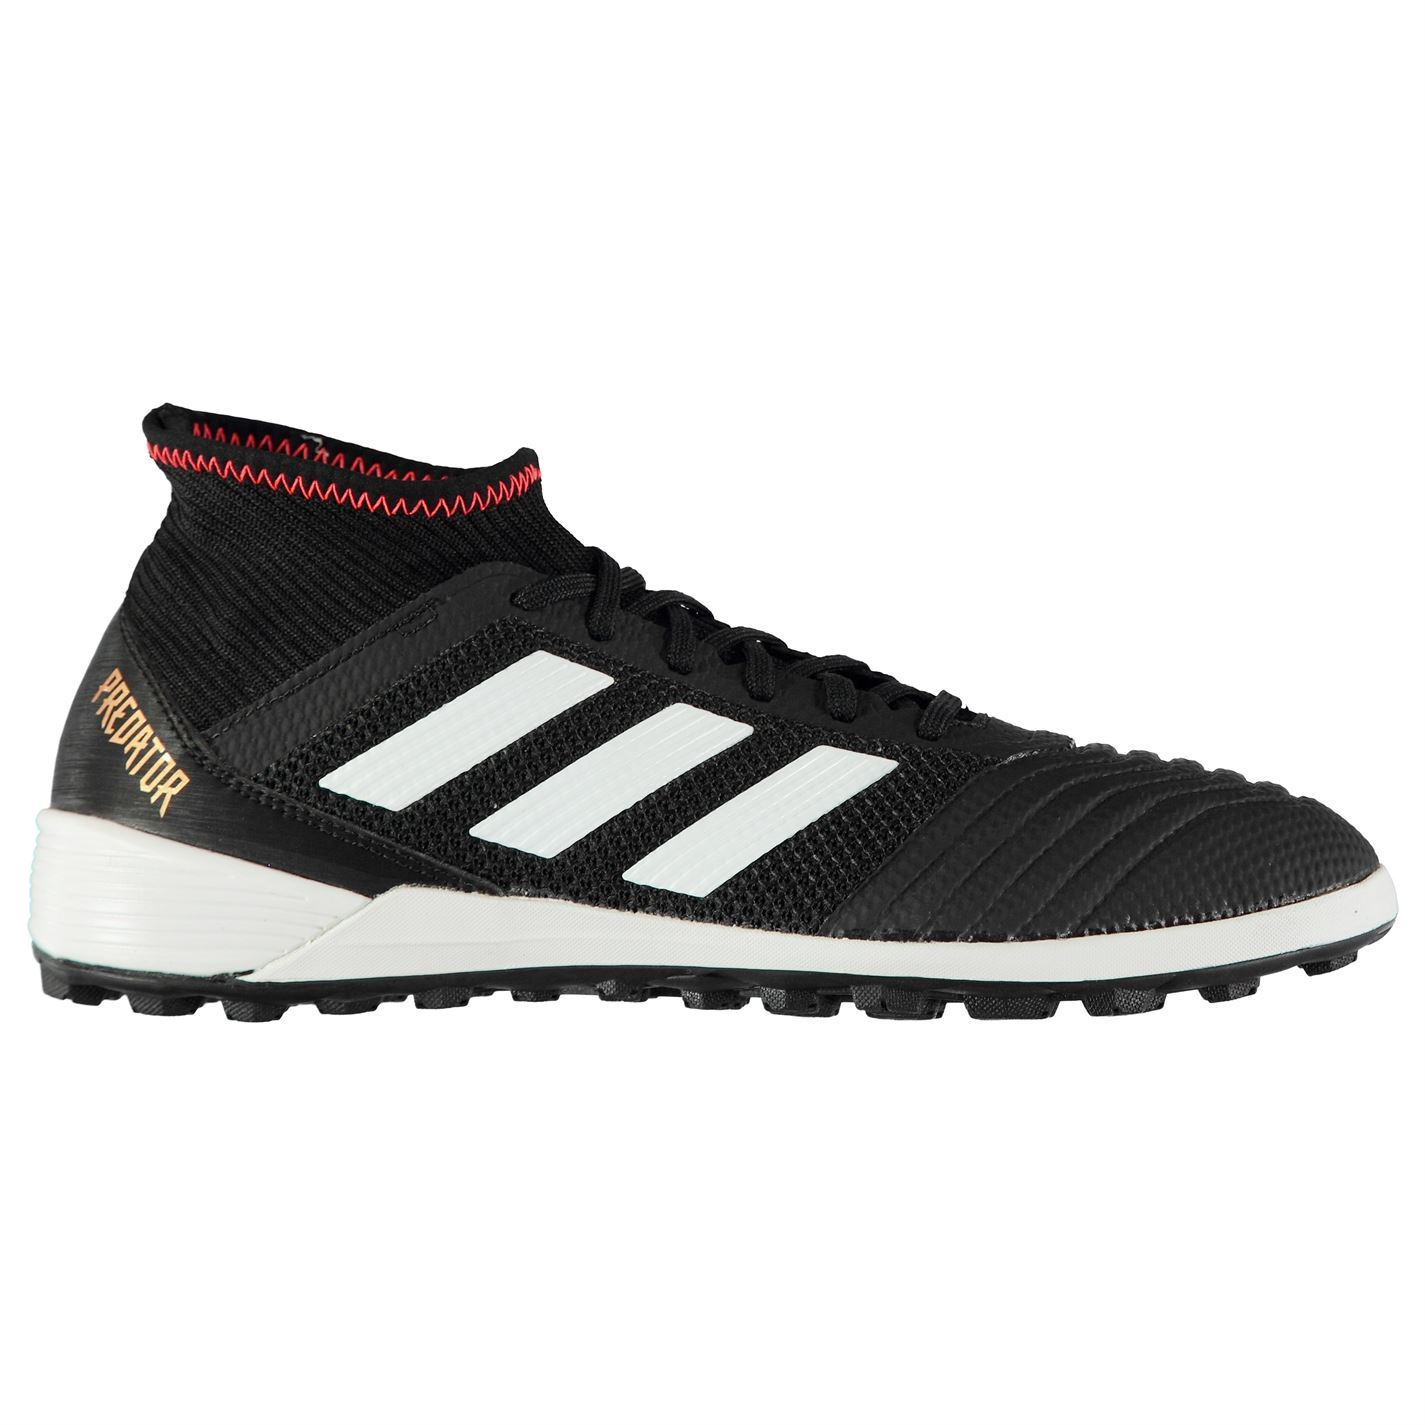 ab2f1a86d524 adidas Mens Predator Tango 18.3 Astro Turf Trainers Football Boots Lace Up